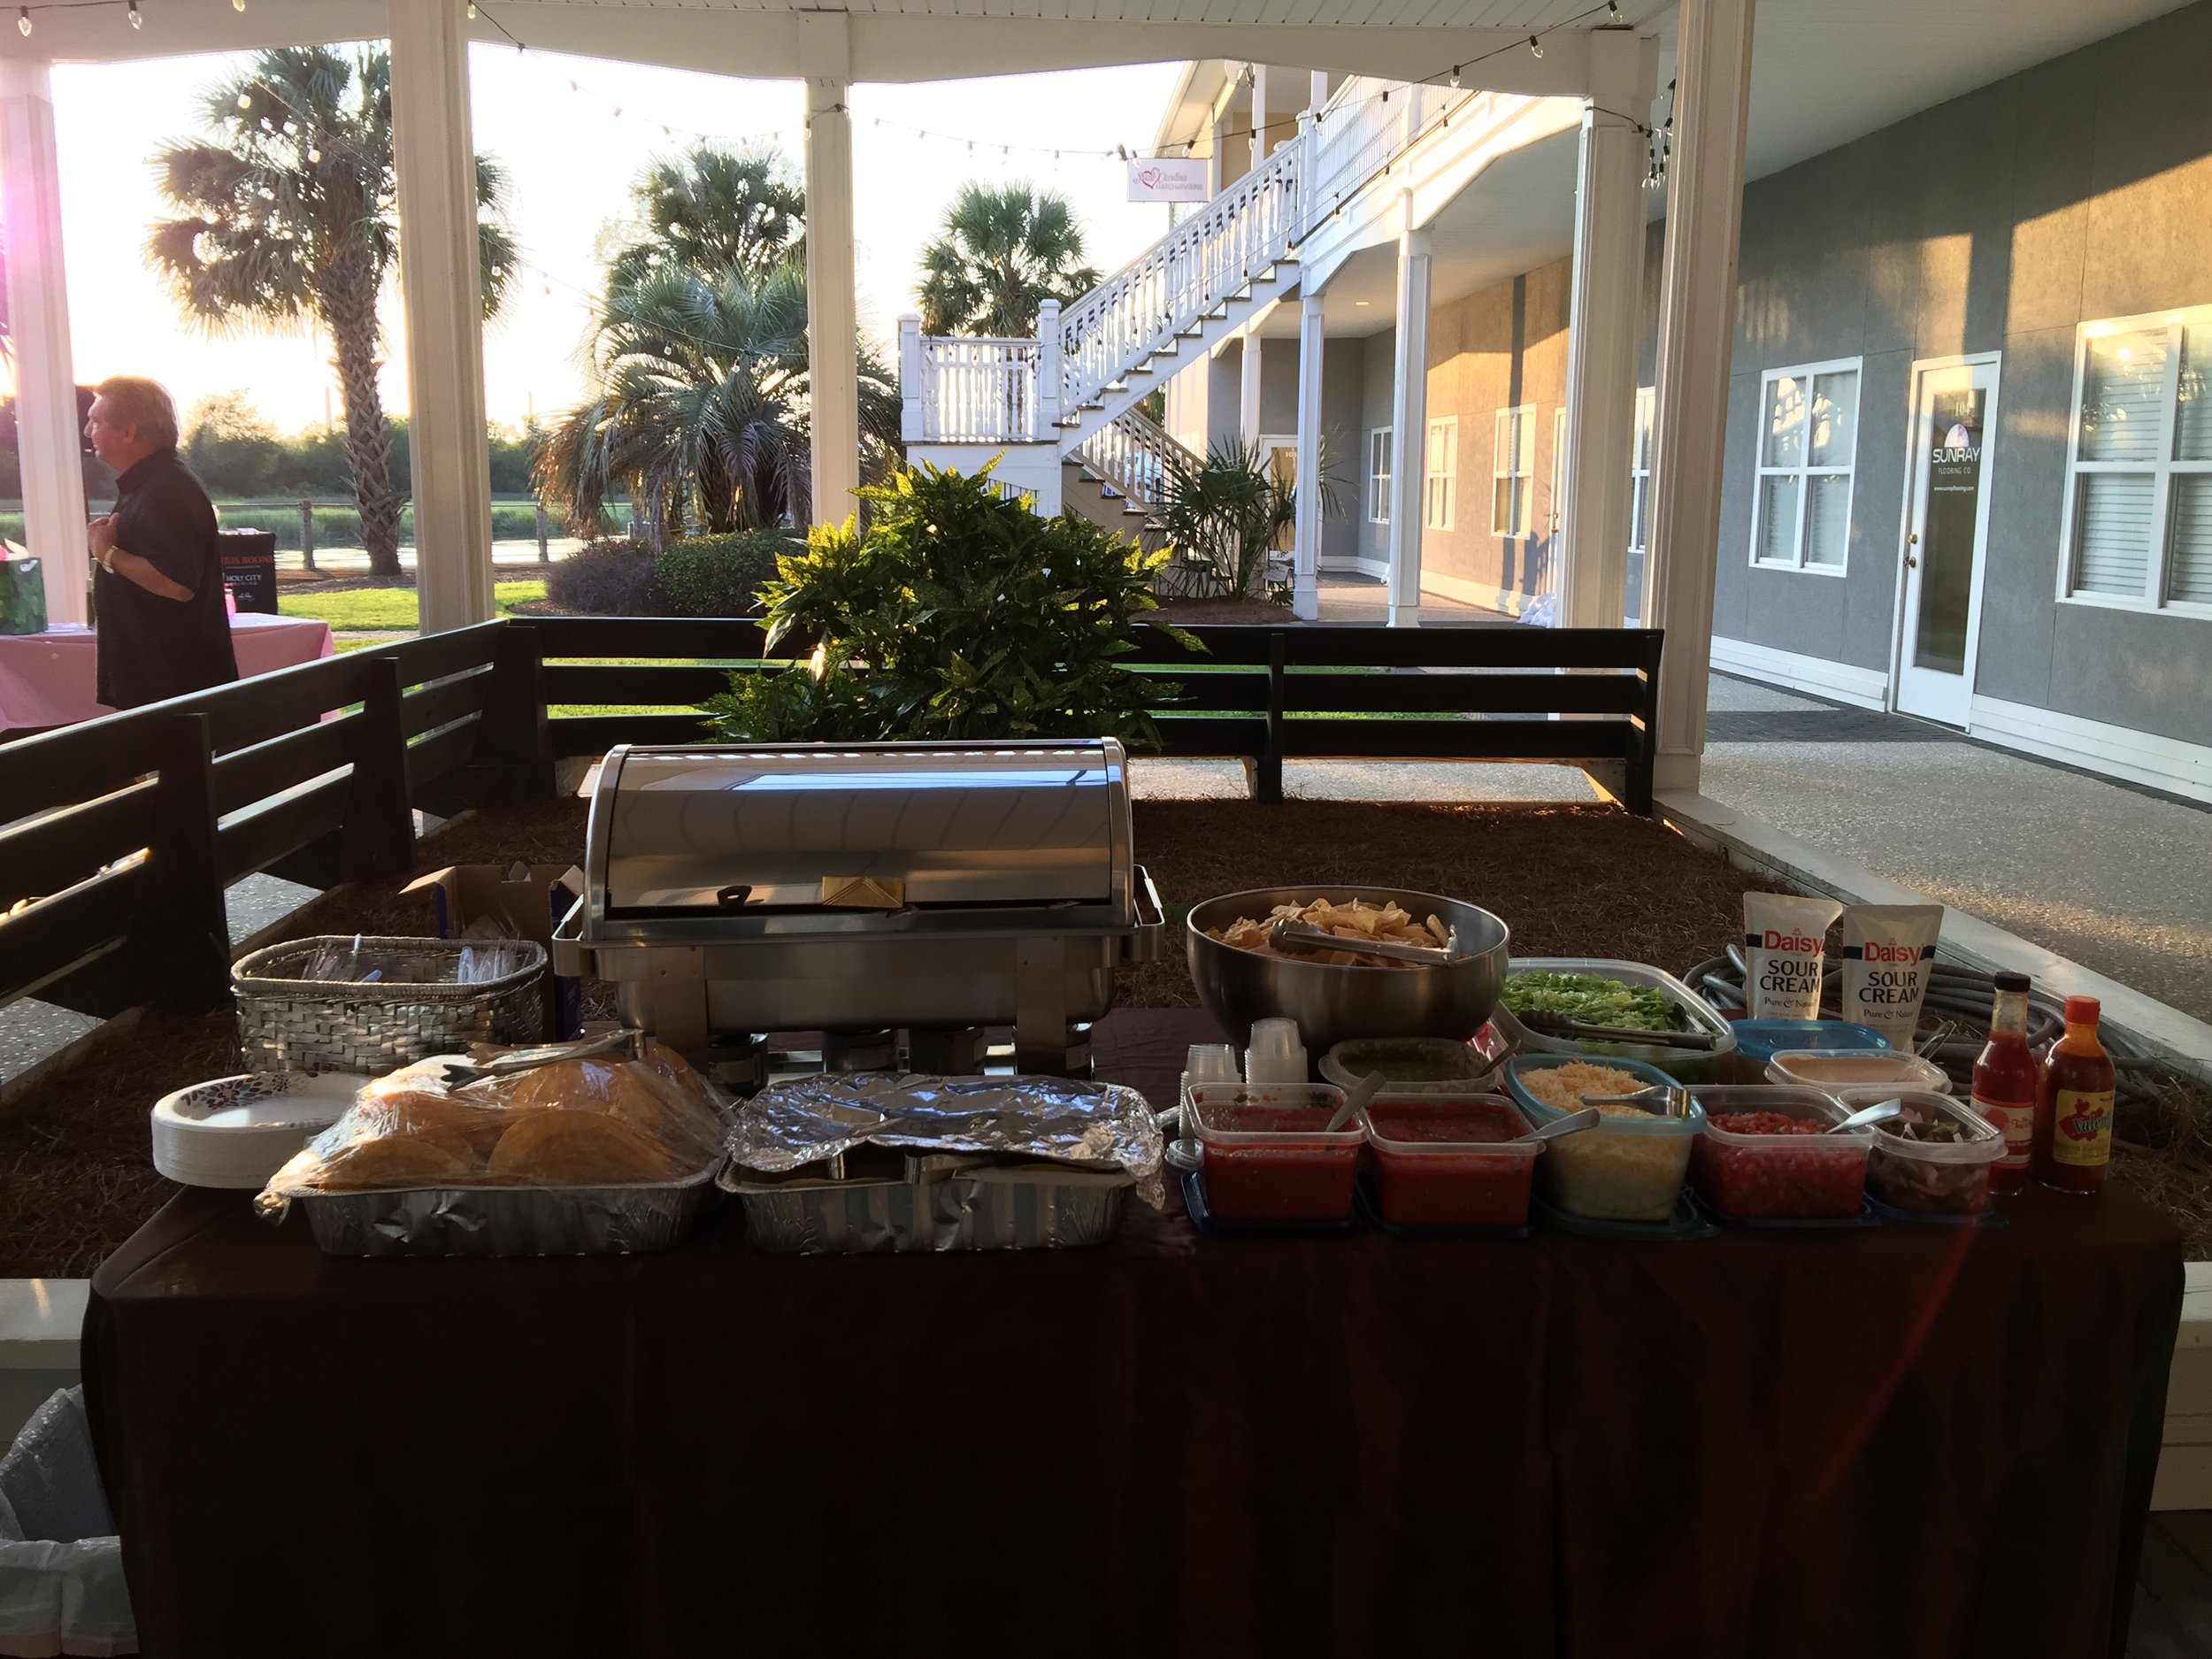 Private event catering for a birthday party